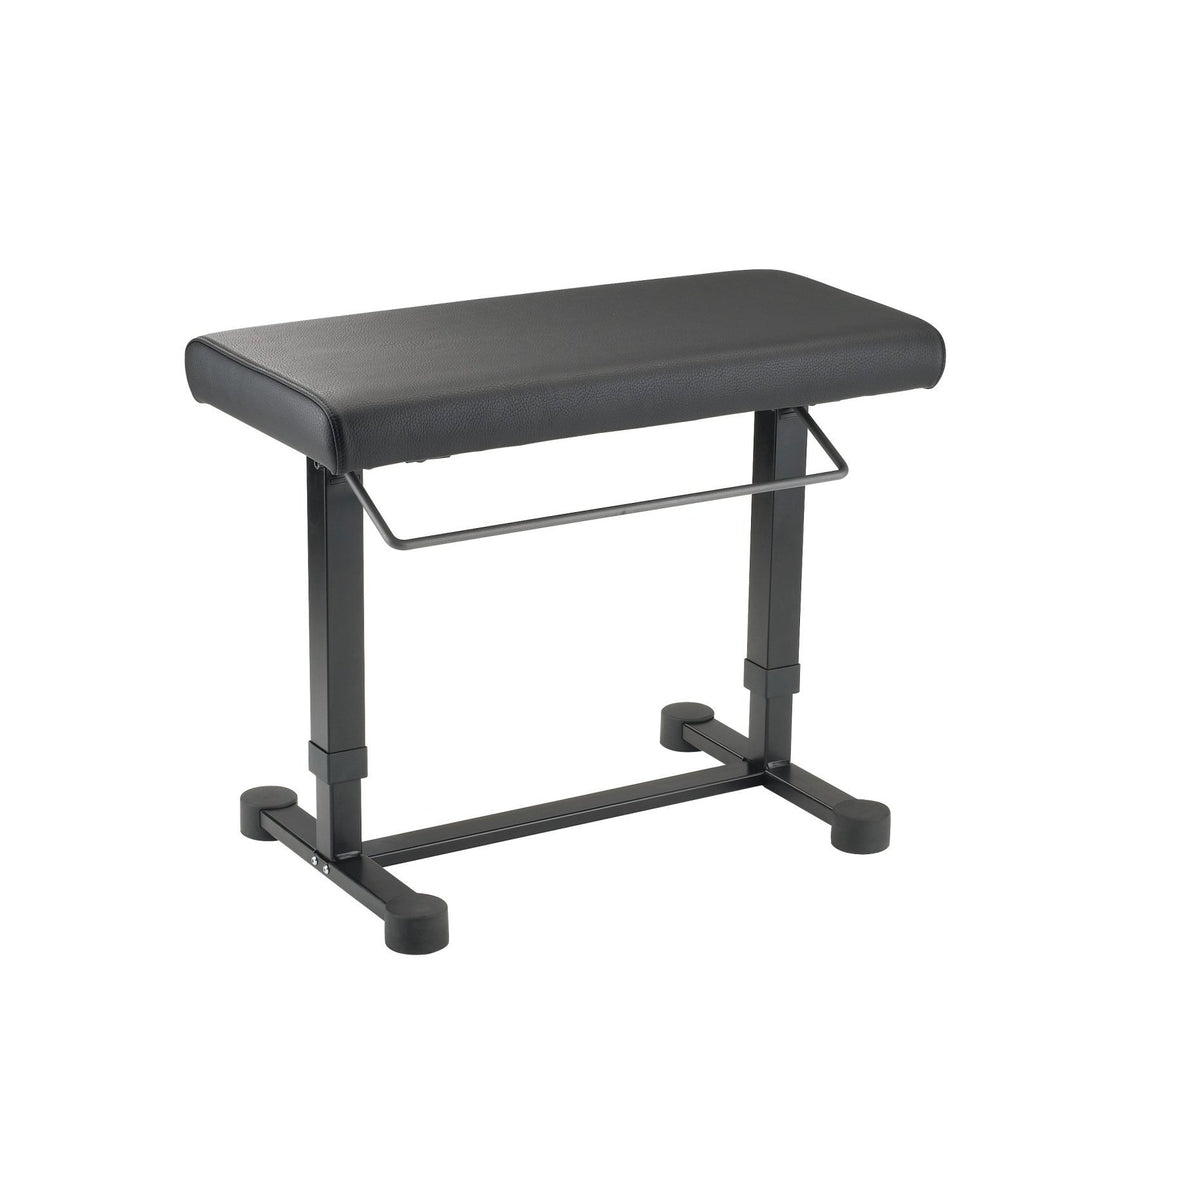 König & Meyer - 14080/14081 <Uplift> Piano Benches-Instrument Stand-König & Meyer-Black Imitation Leather (14080)-Music Elements